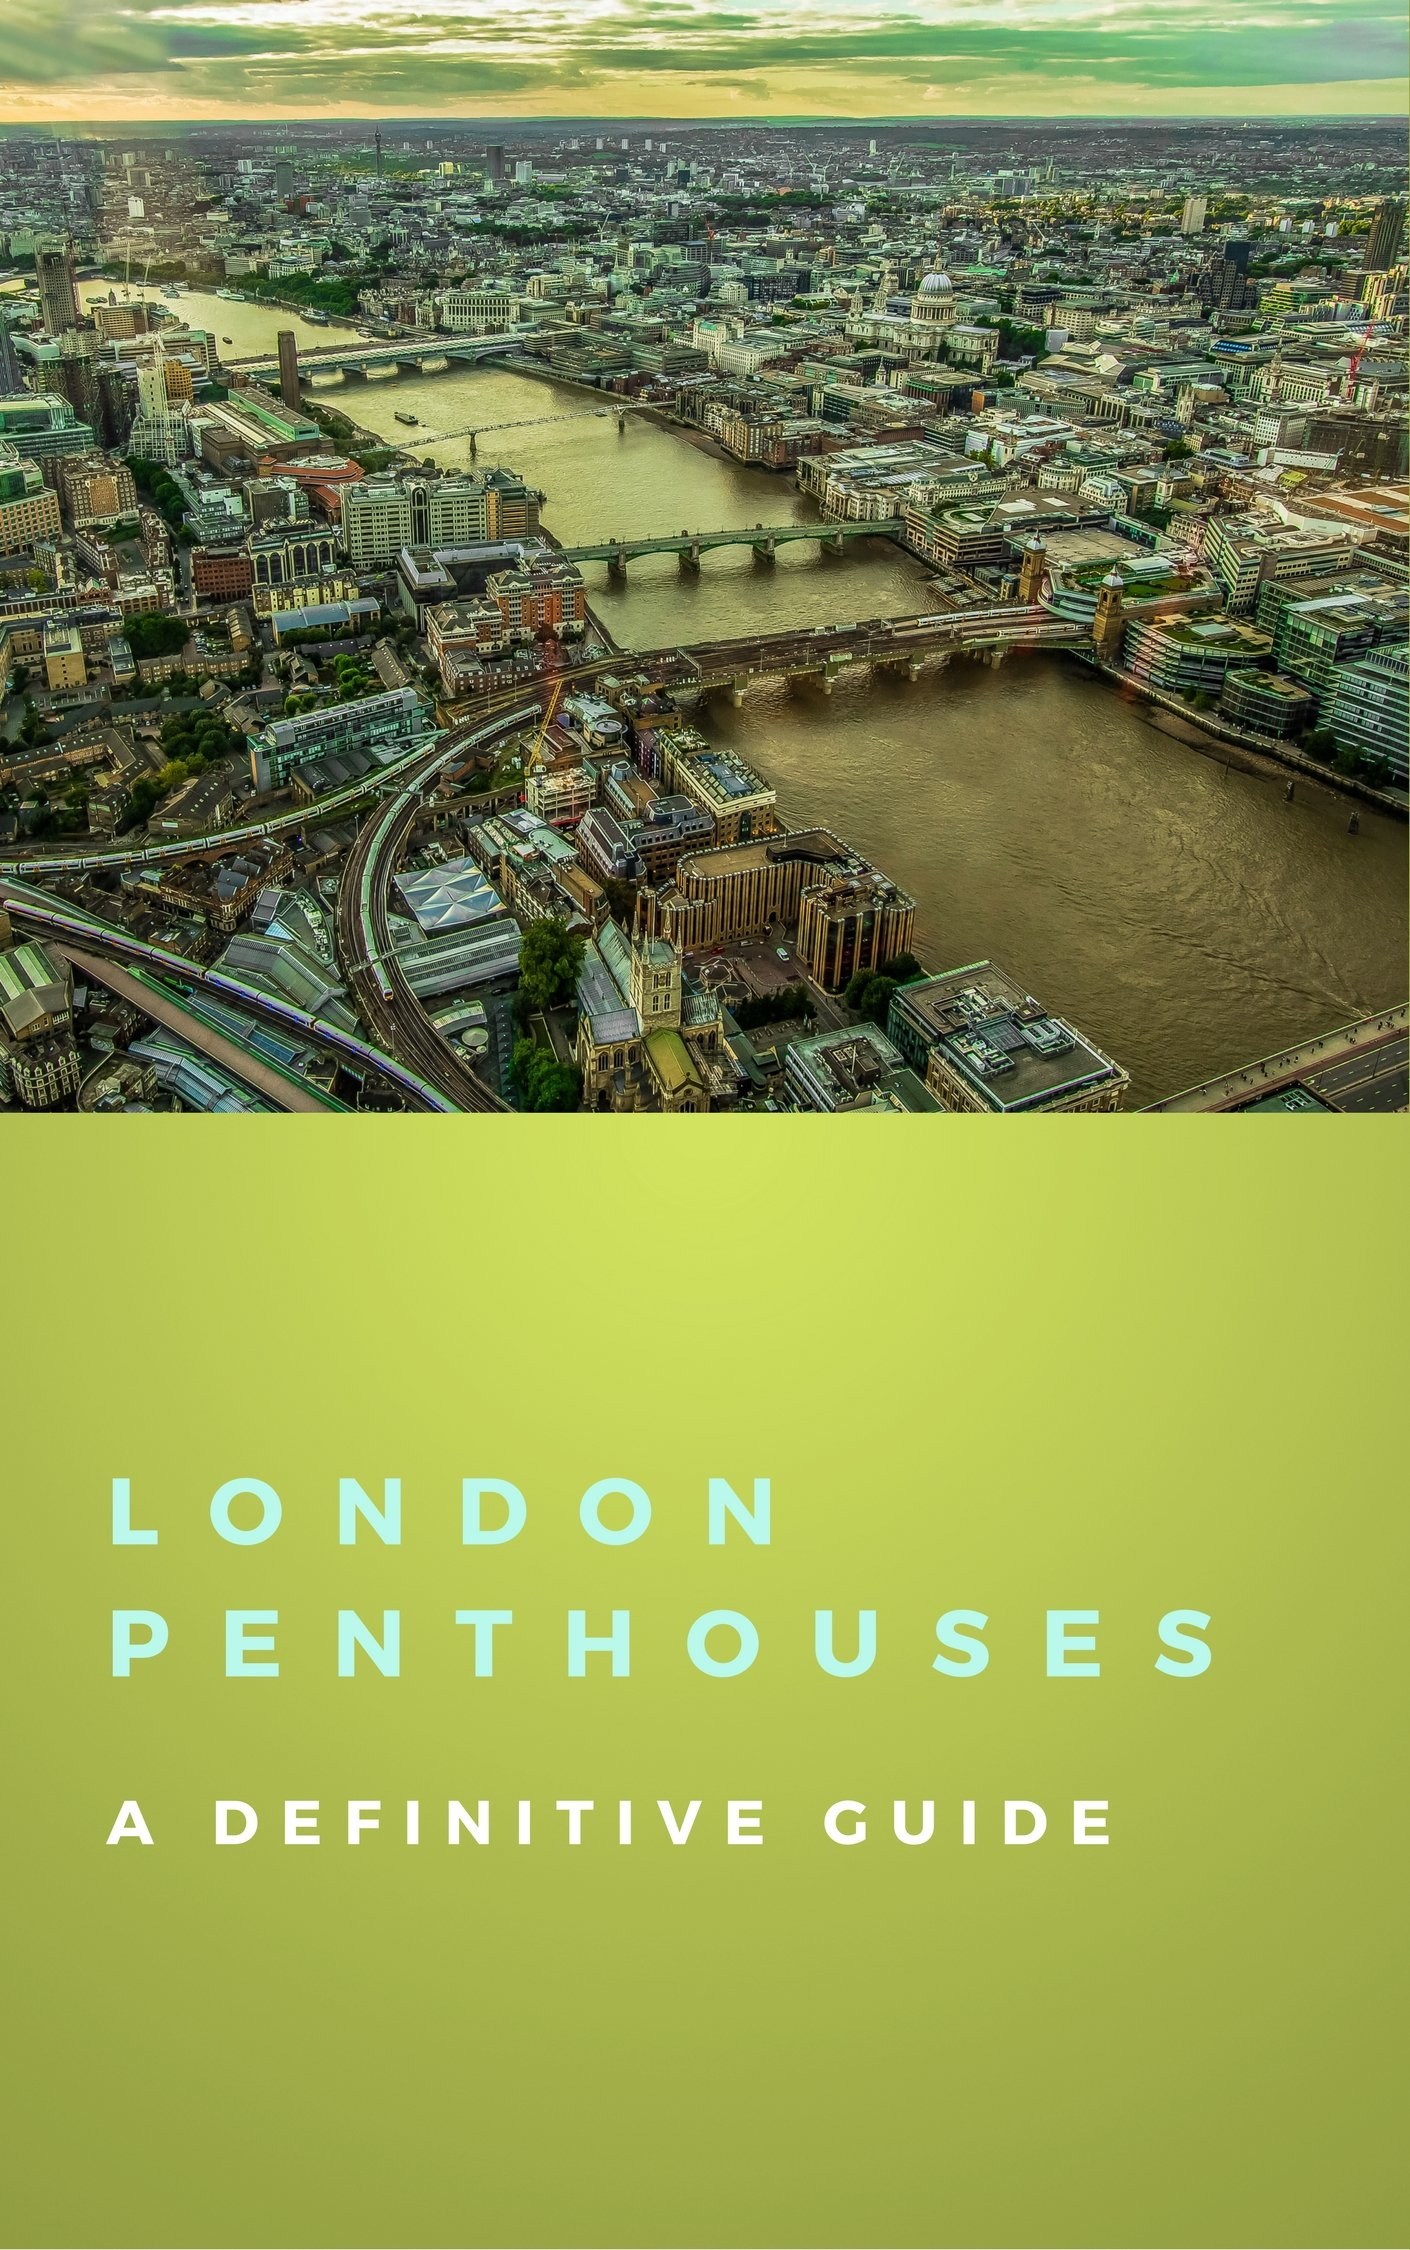 London Penthouses: A Definitive Guide